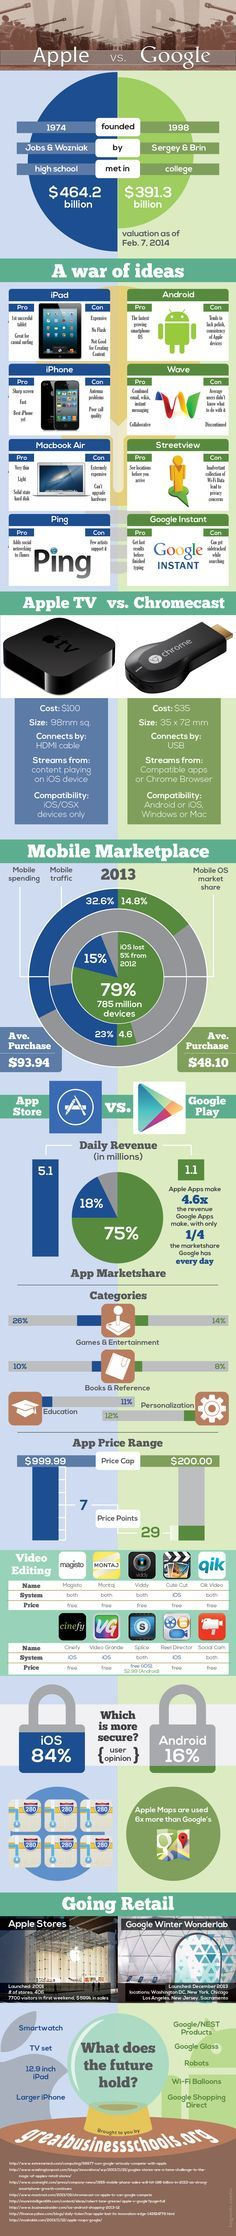 #Google vs #Apple - A Great #Infographic sharing clear difference between two tech giants. Great app idea if you want to create a new app for Android platform. http://blogregateapps.com